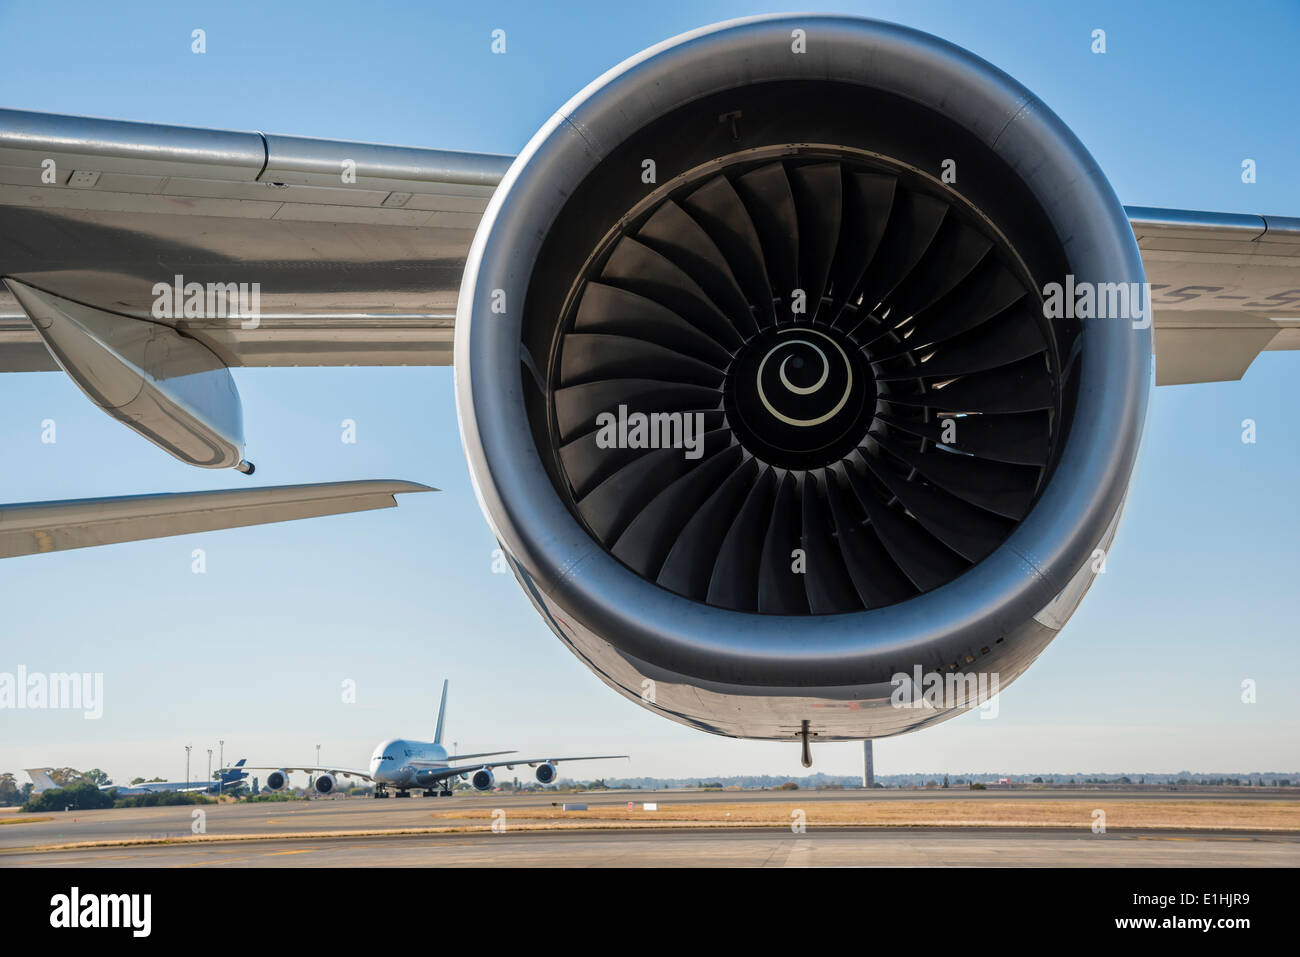 Jet engine, Airbus A340 turbine, an Airbus A380 on a runway at the back, South Africa - Stock Image